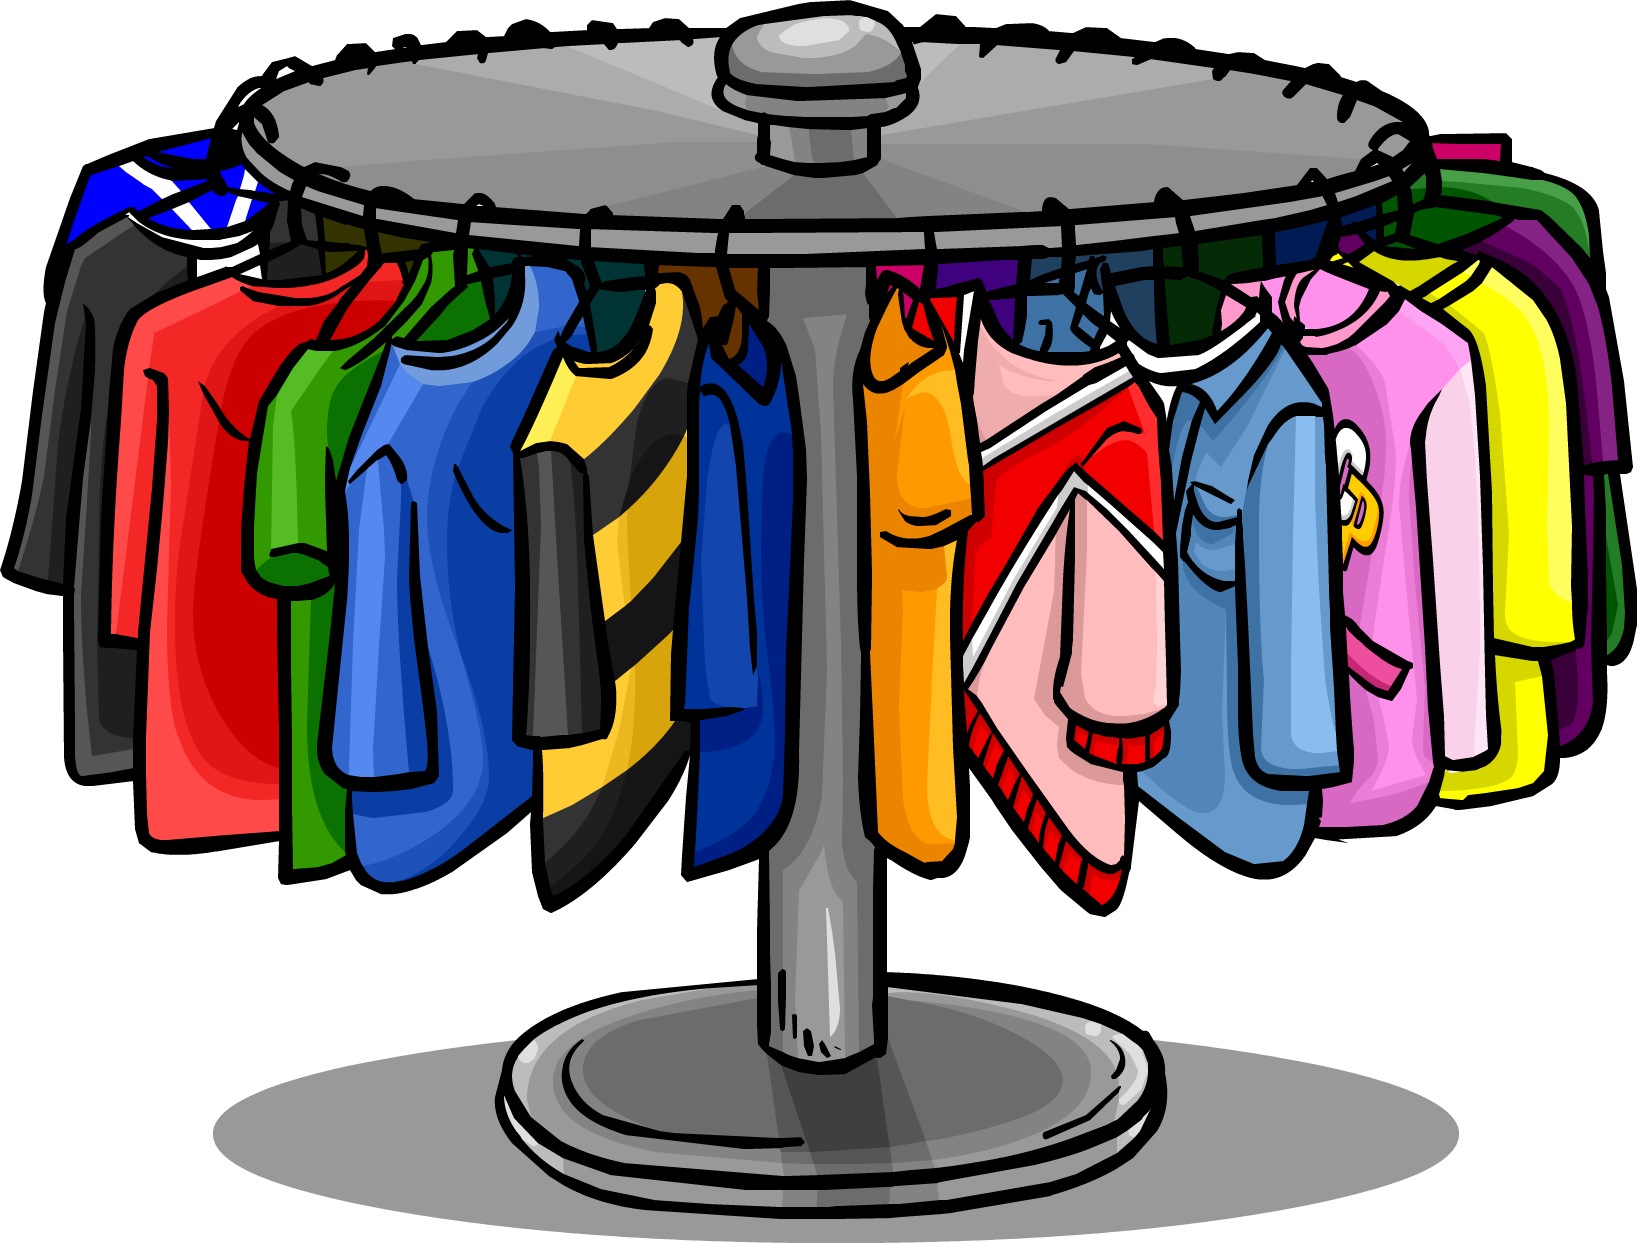 Furniture clipart wardrobe. Clothes rack club penguin